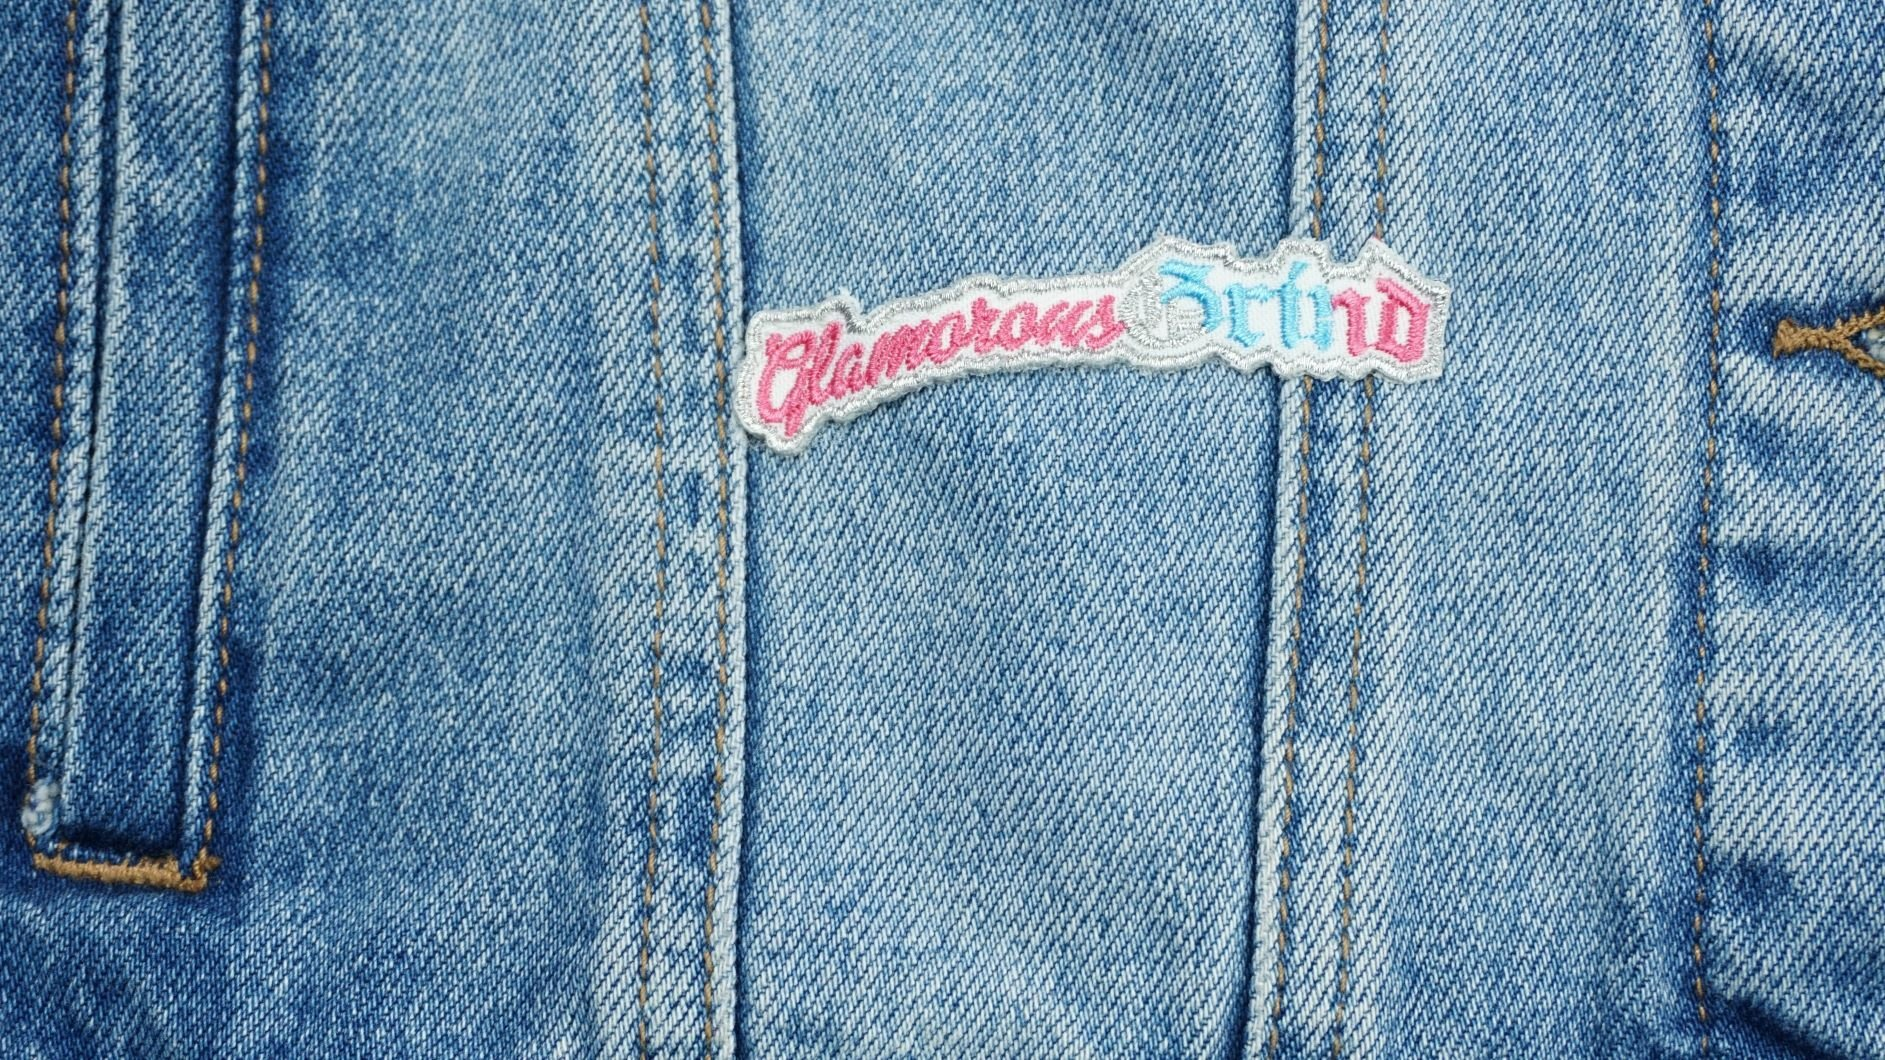 Glamorous Grind Patch - Ambition Is The New Pink